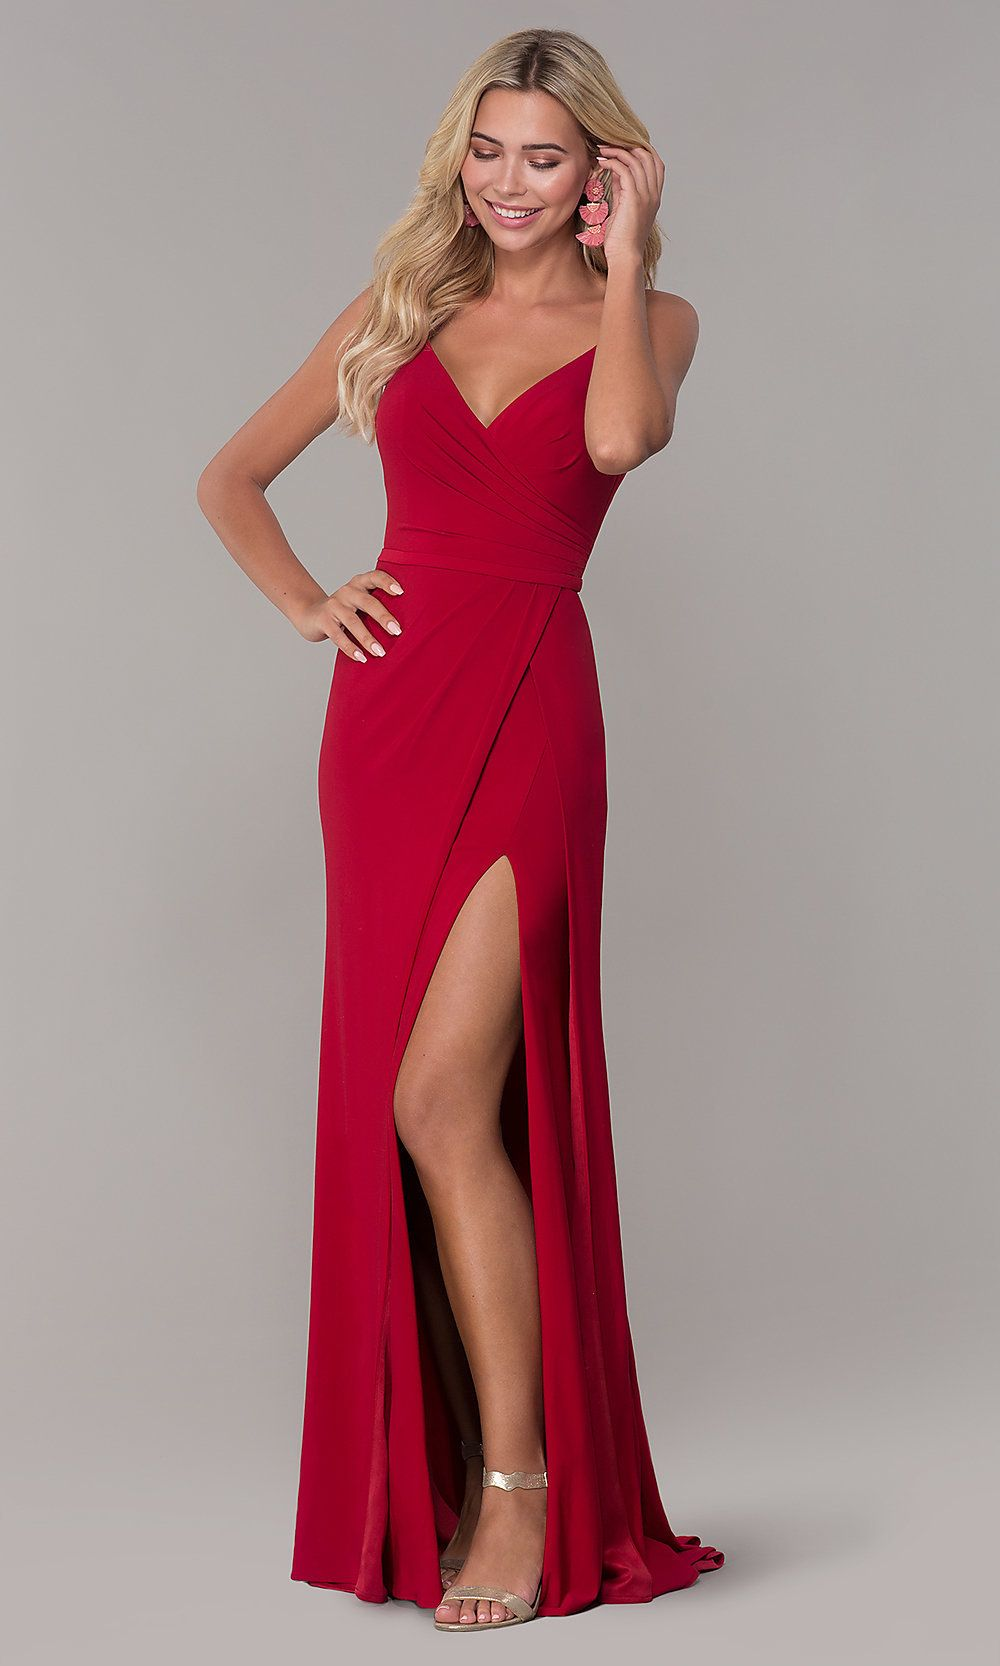 374751387f Shop Dave and Johnny long v-neck prom dresses with slits at PromGirl.  Sleeveless junior-size formal dresses for prom and designer floor-length  evening ...